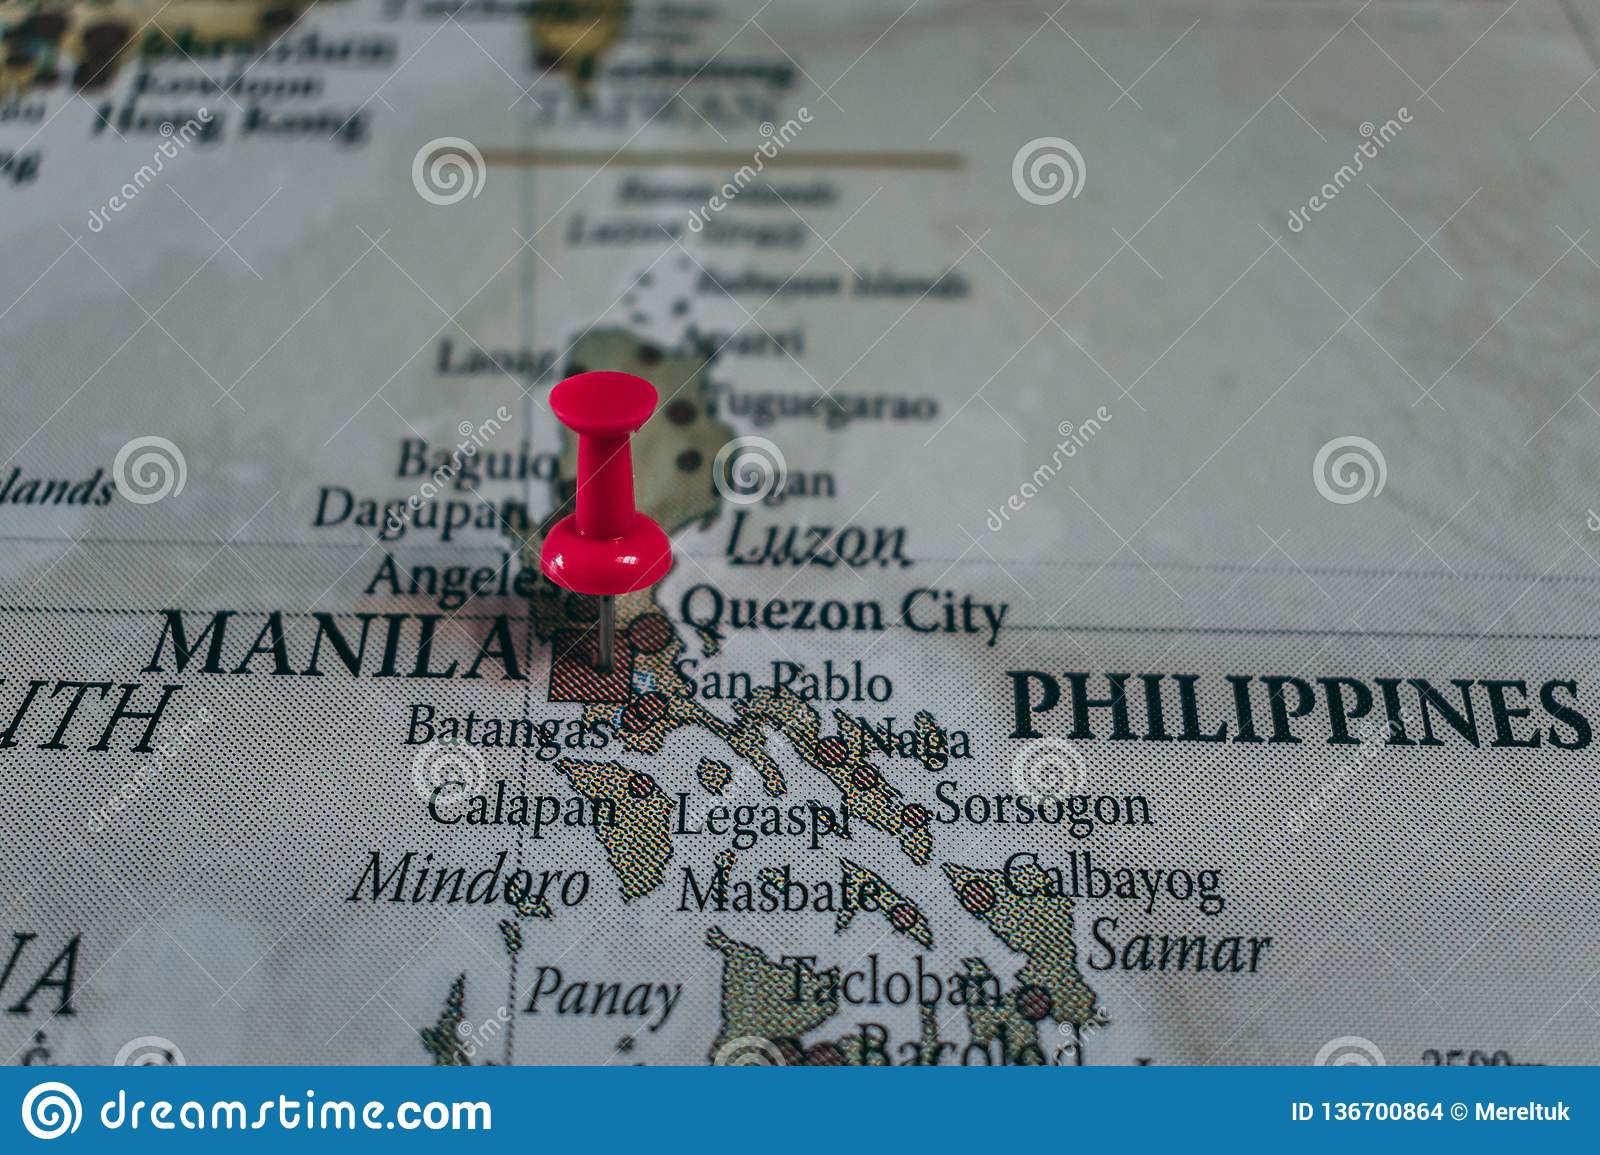 Close up of Manila pin pointed on the world map with a pink pushpin